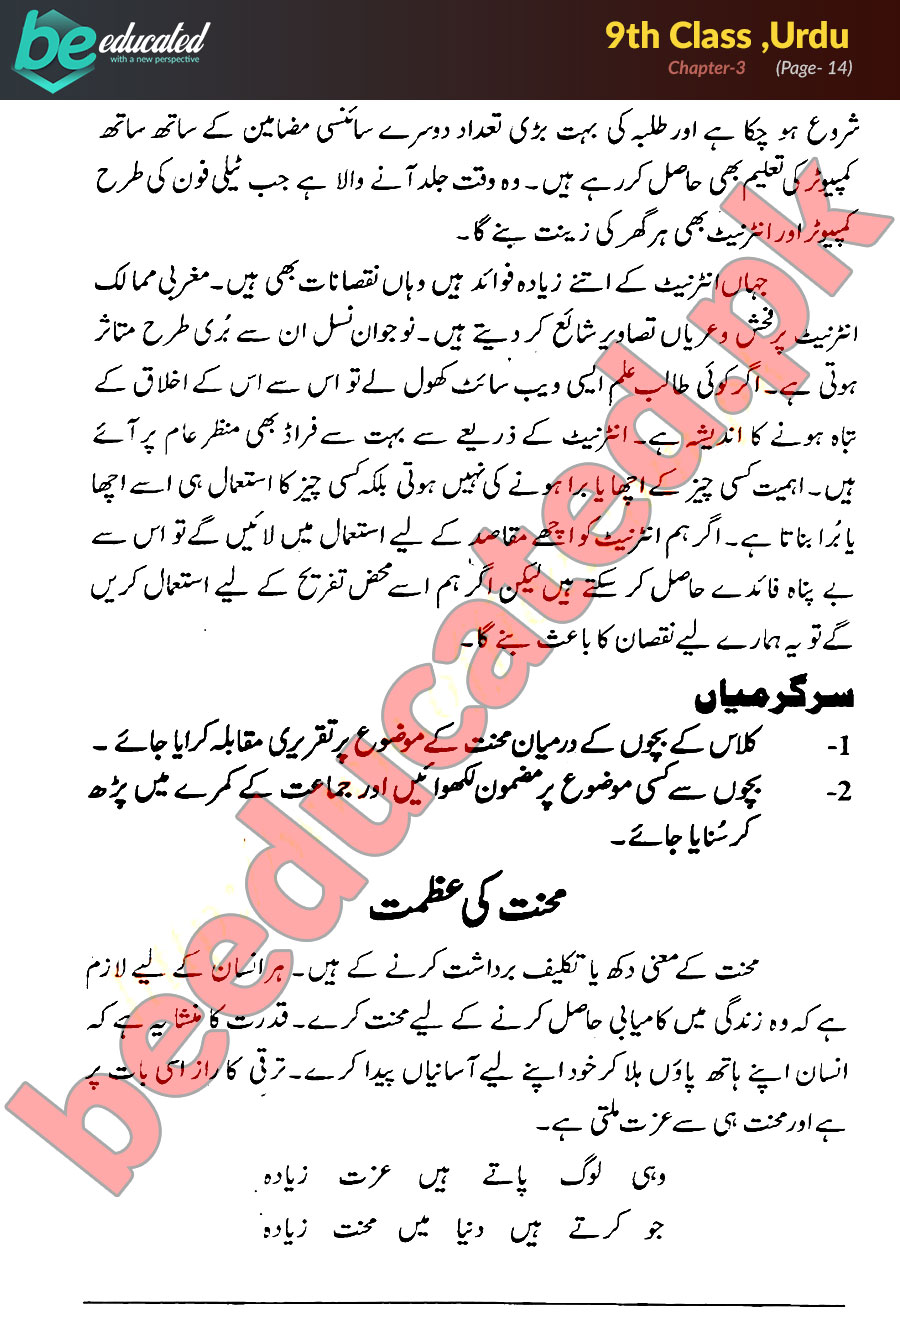 Chapter 3 Urdu 9th Class Notes - Matric Part 1 Notes